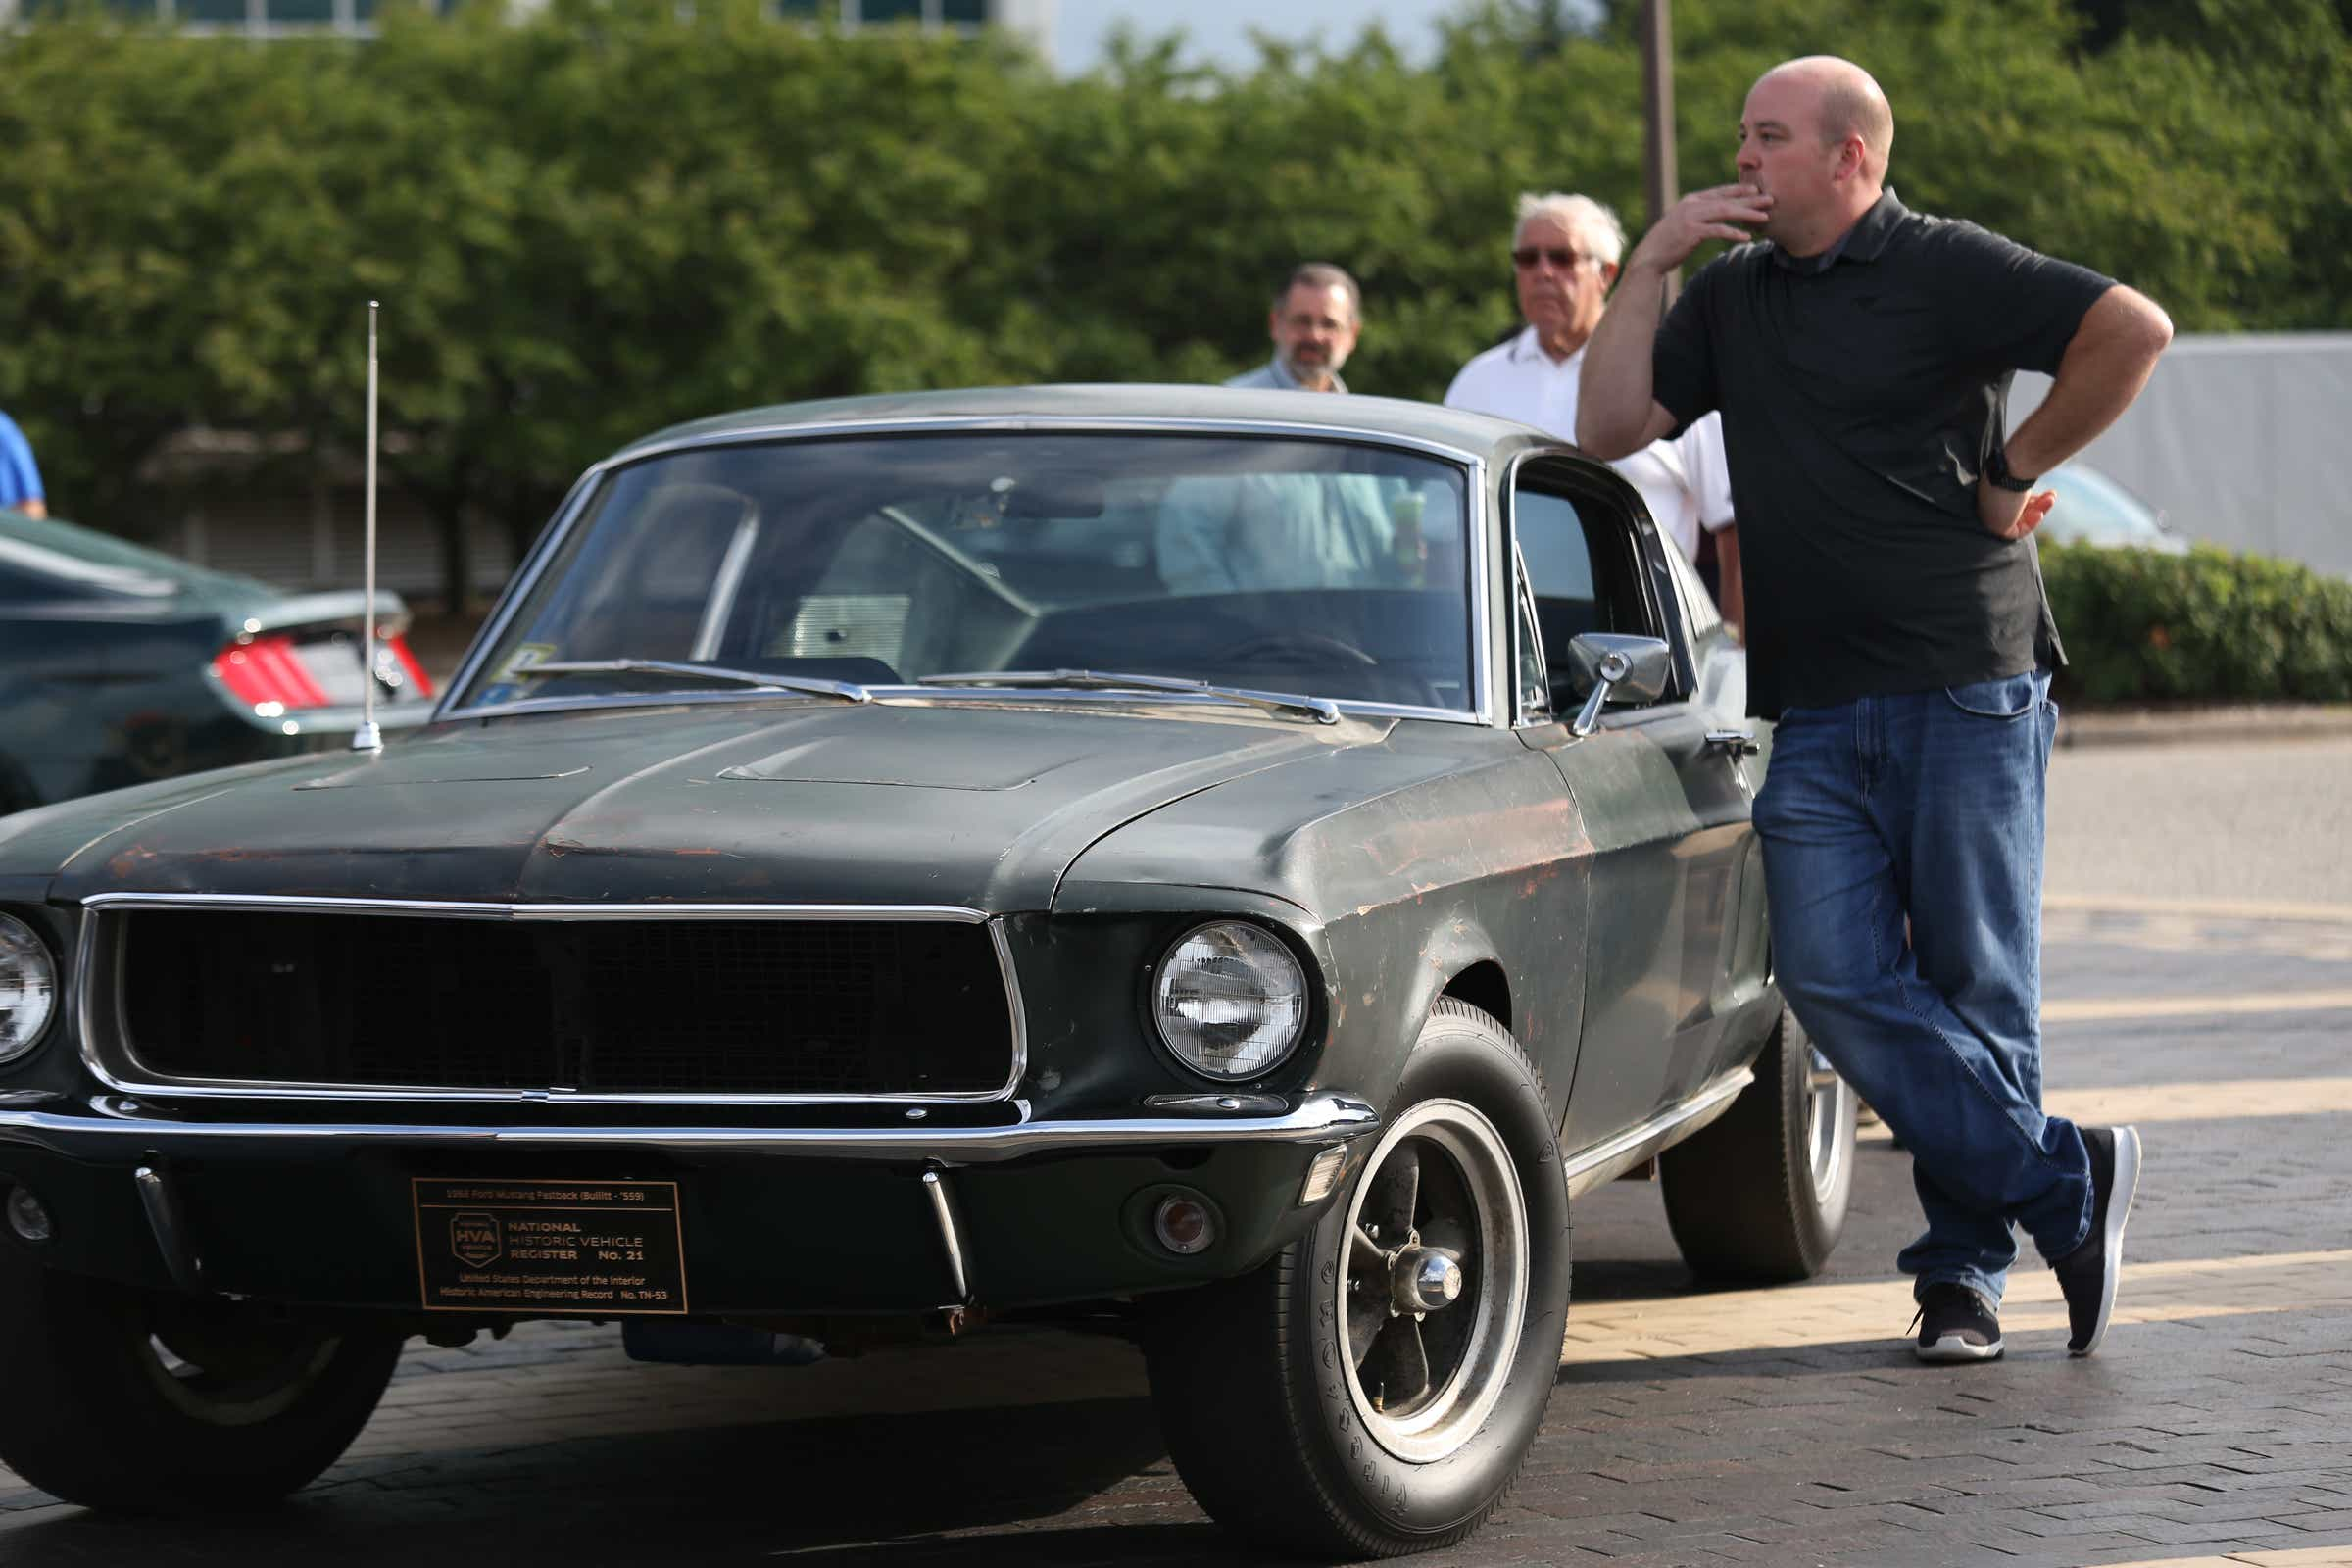 Steve Mcqueen Bullitt Mustang Sells For Record At Auction After Years In Jersey Garage